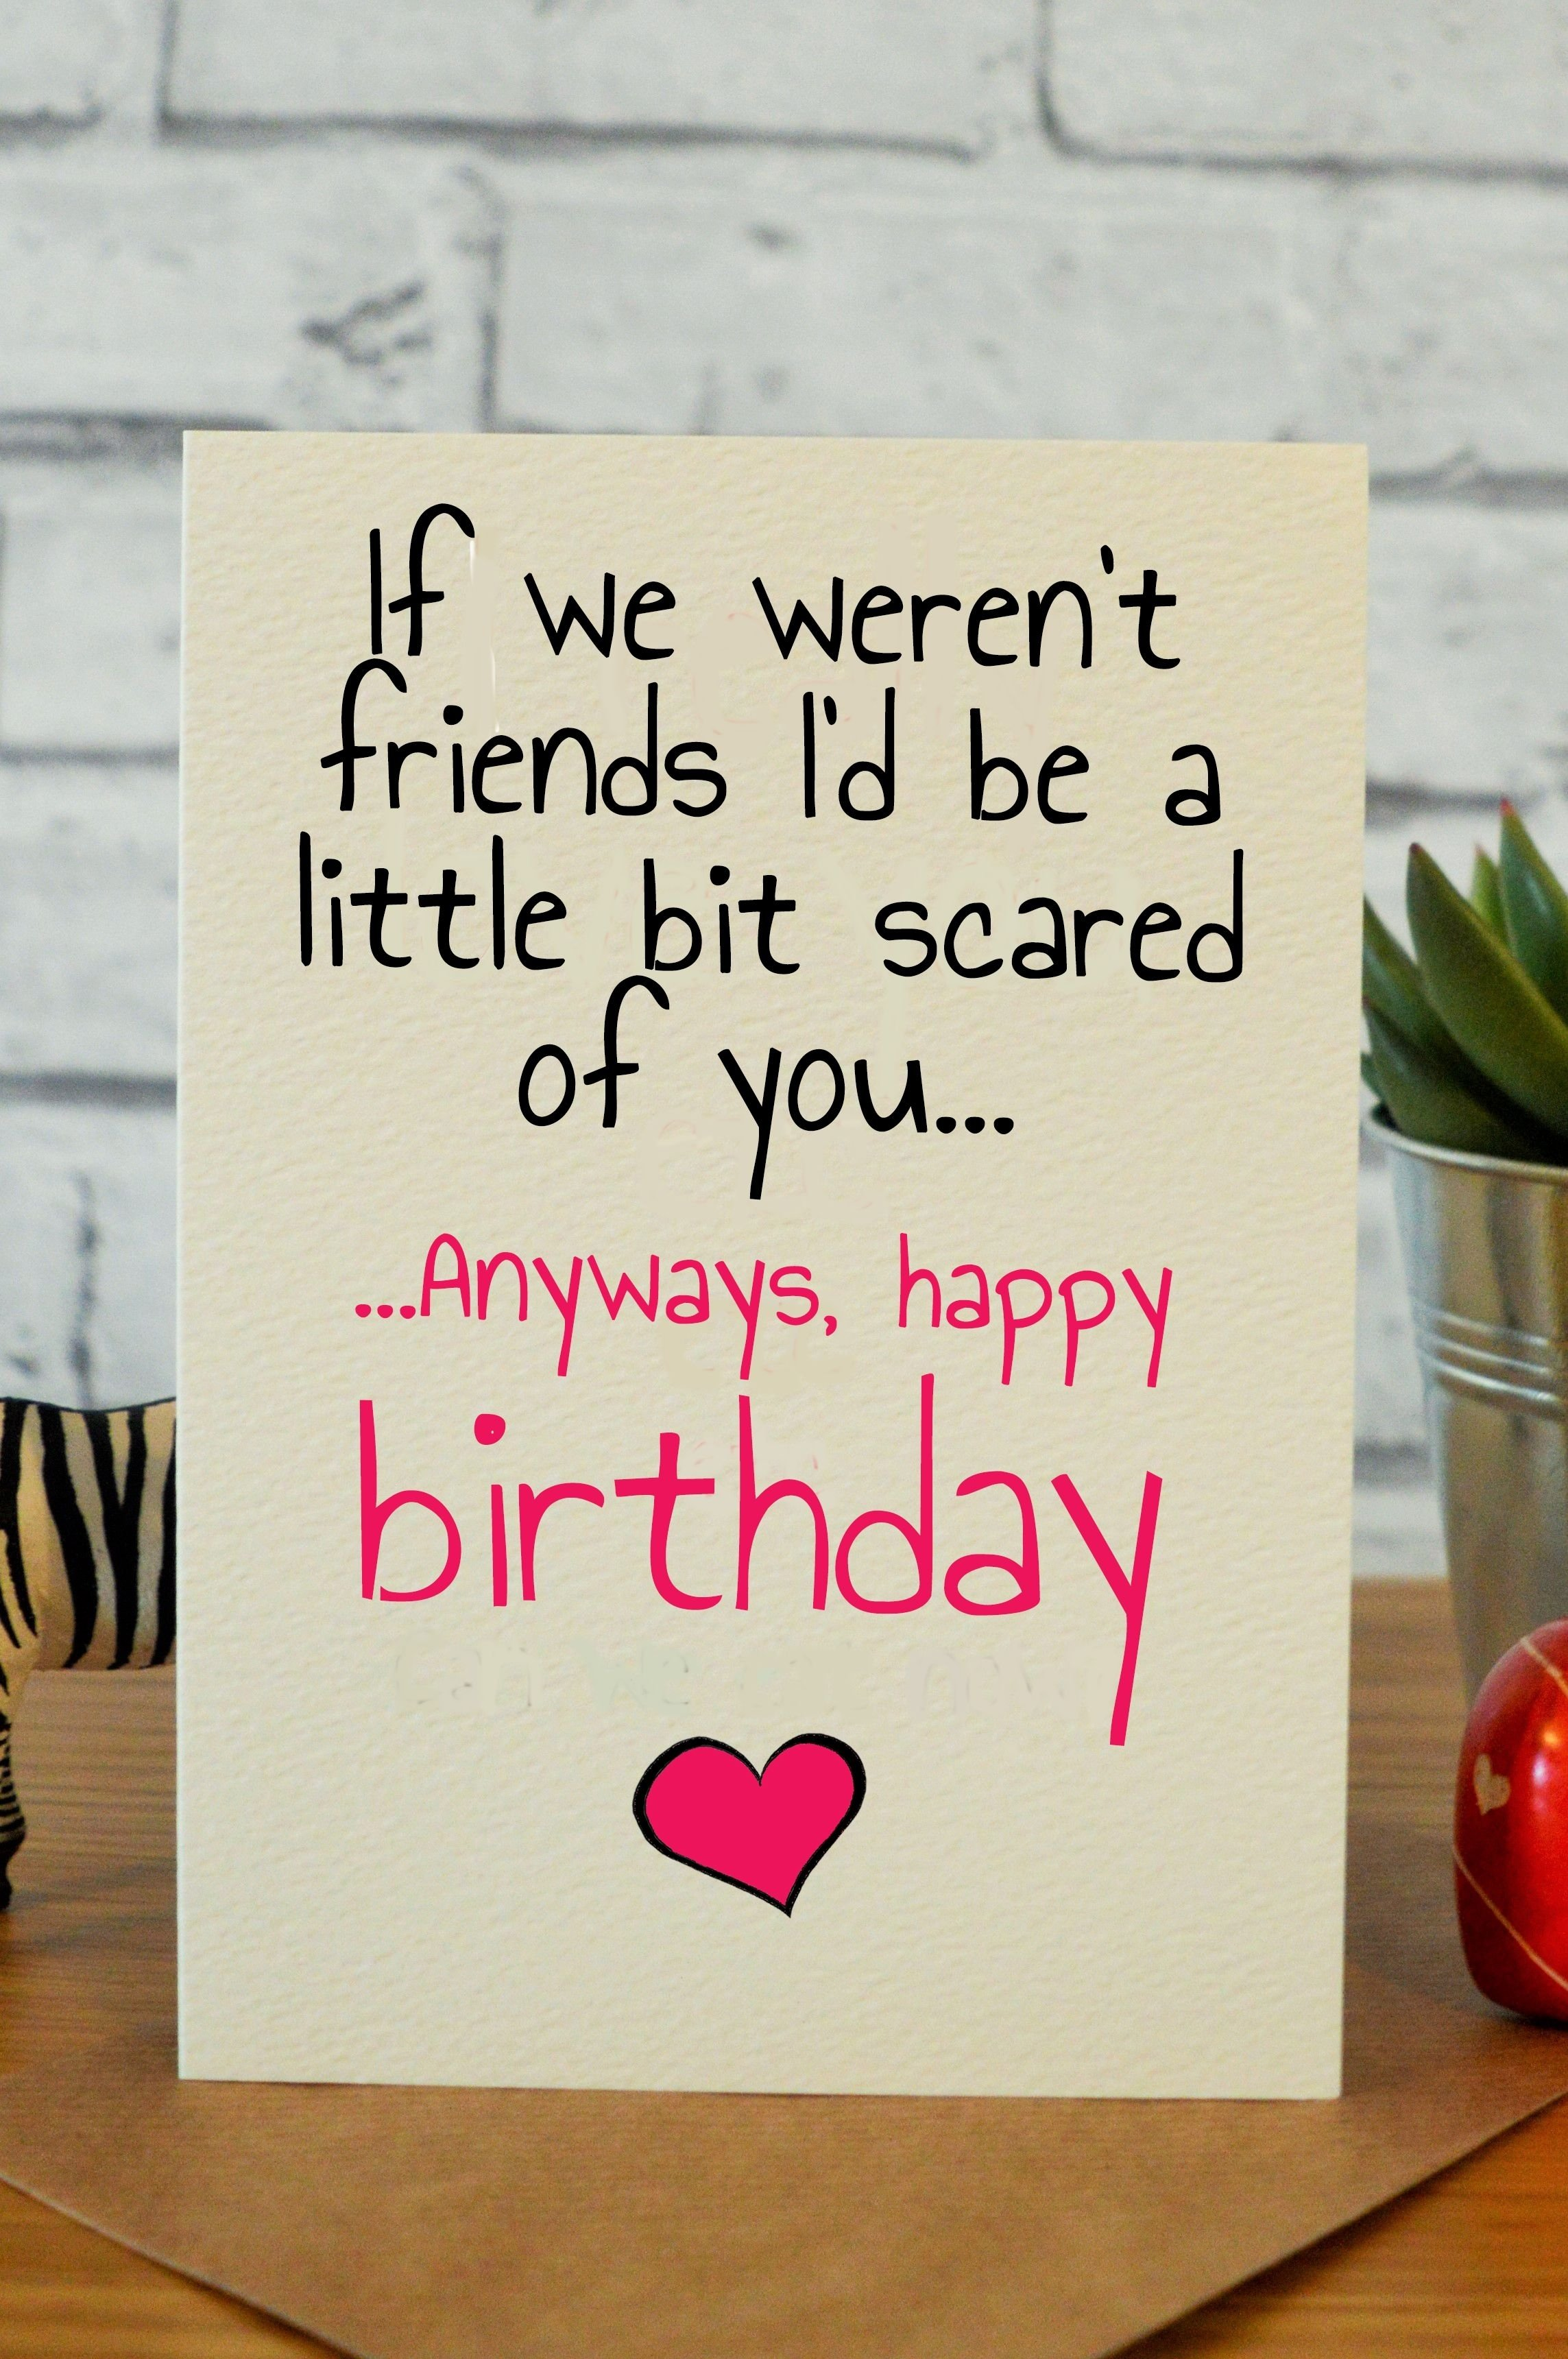 10 Perfect Best Friend Birthday Card Ideas little bit scared friend birthday card friend birthday and birthdays 2020